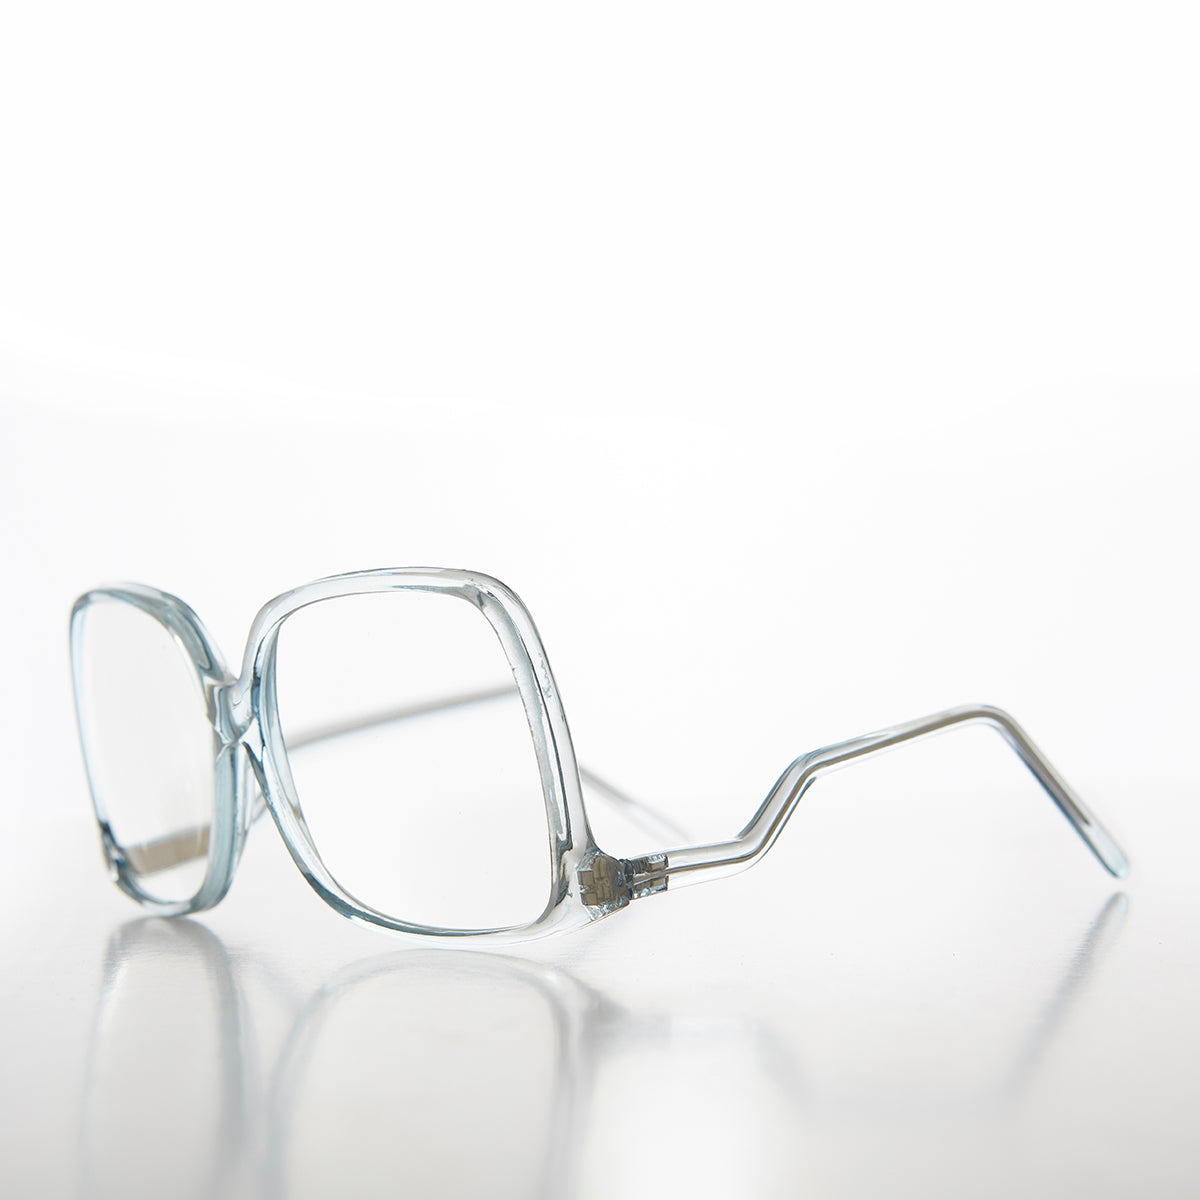 Oversized Reading Glasses with Upside Down Temples